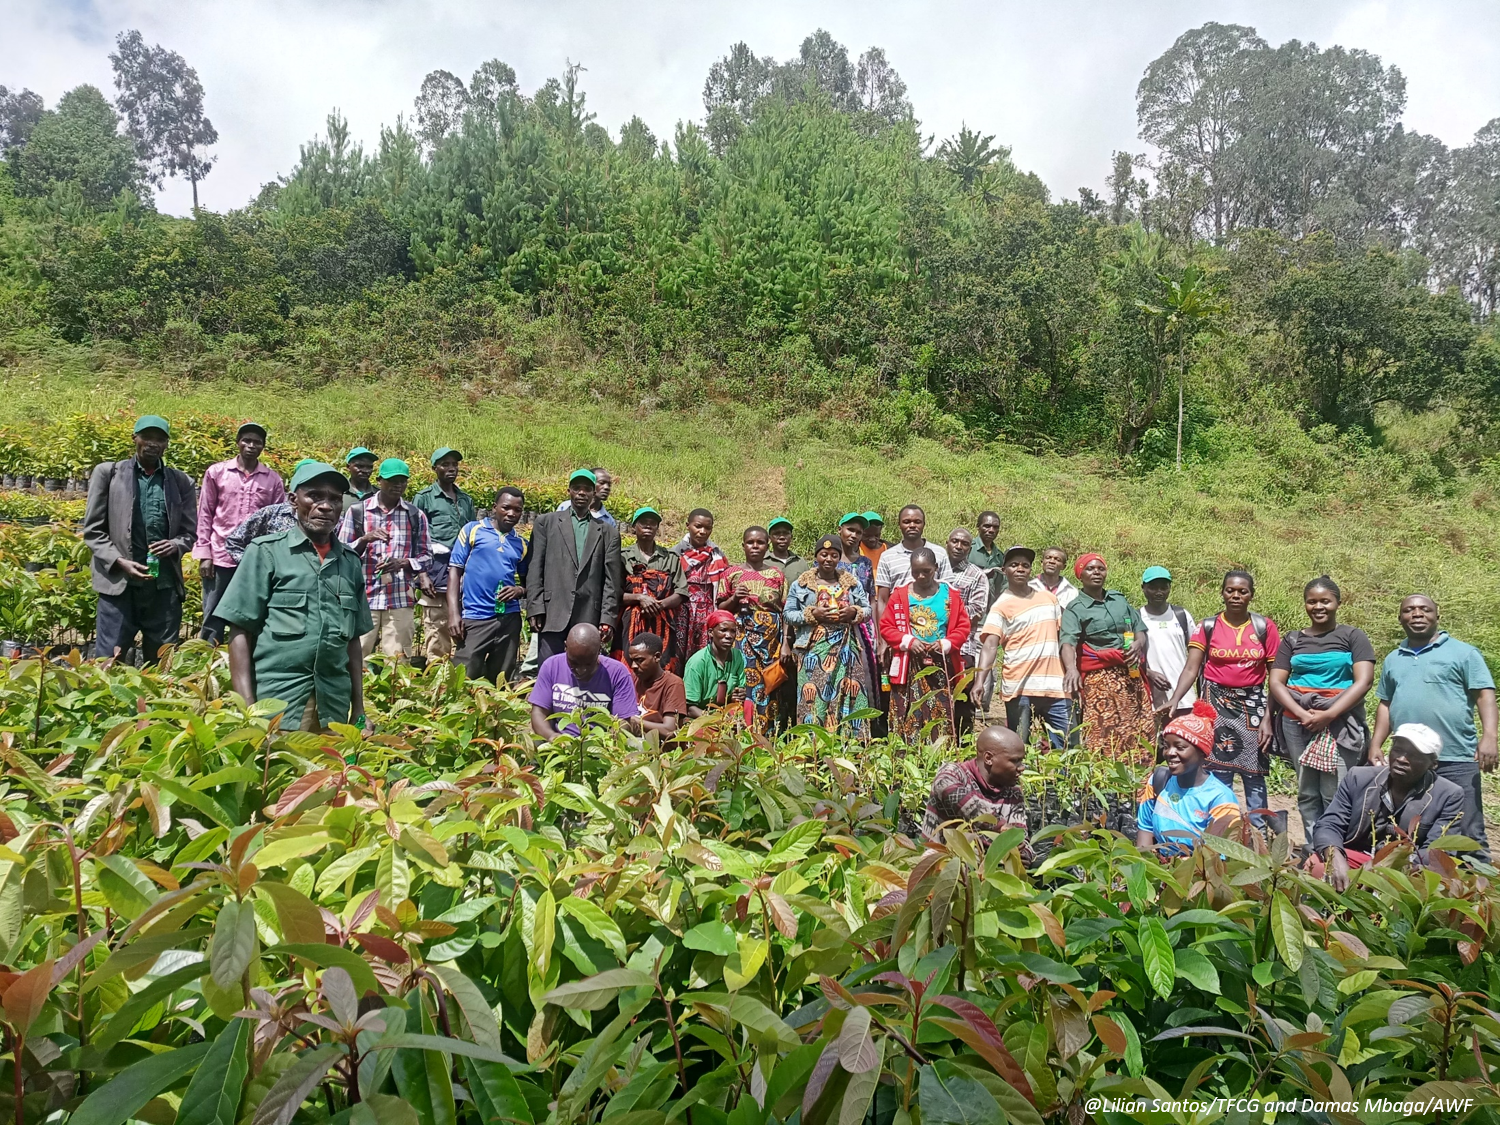 ABCG GCI reforestation activity in Mngeta Valley Tanzania organized the African Wildlife Foundation and the Tanzania Forest Working Group